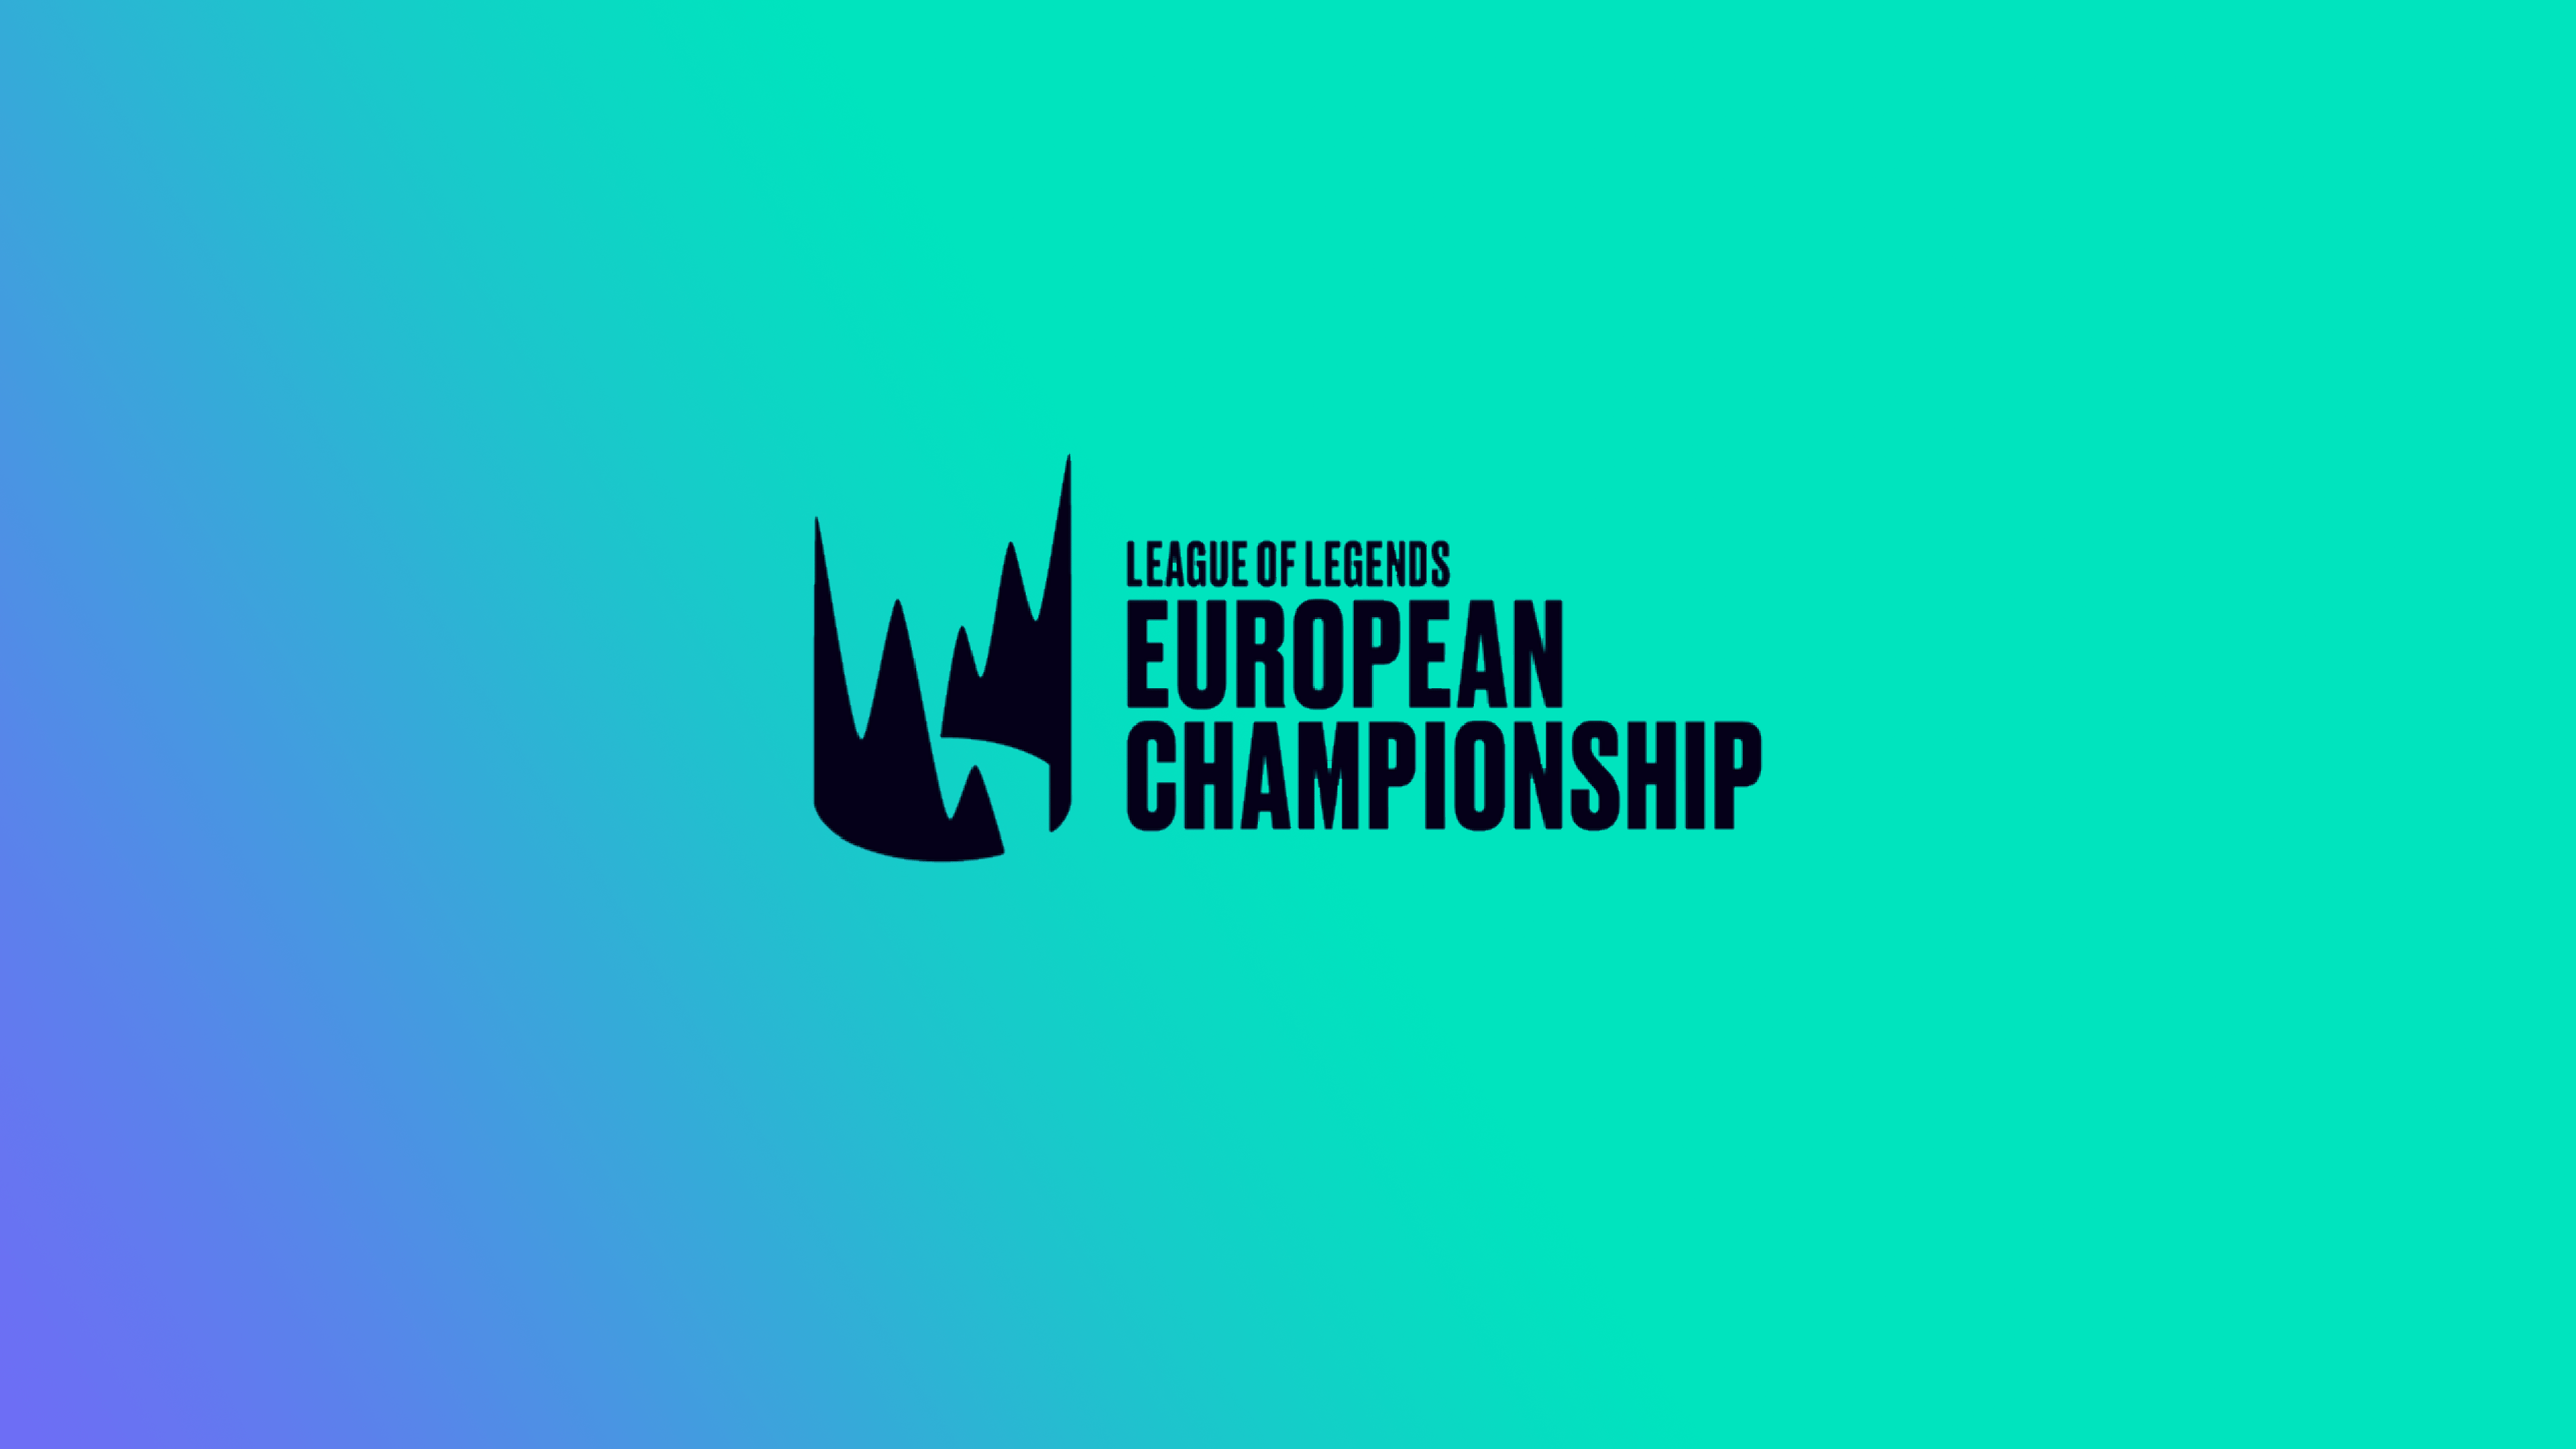 League European Championship Storylines To Watch In The Upcoming Playoffs For A LEC Title